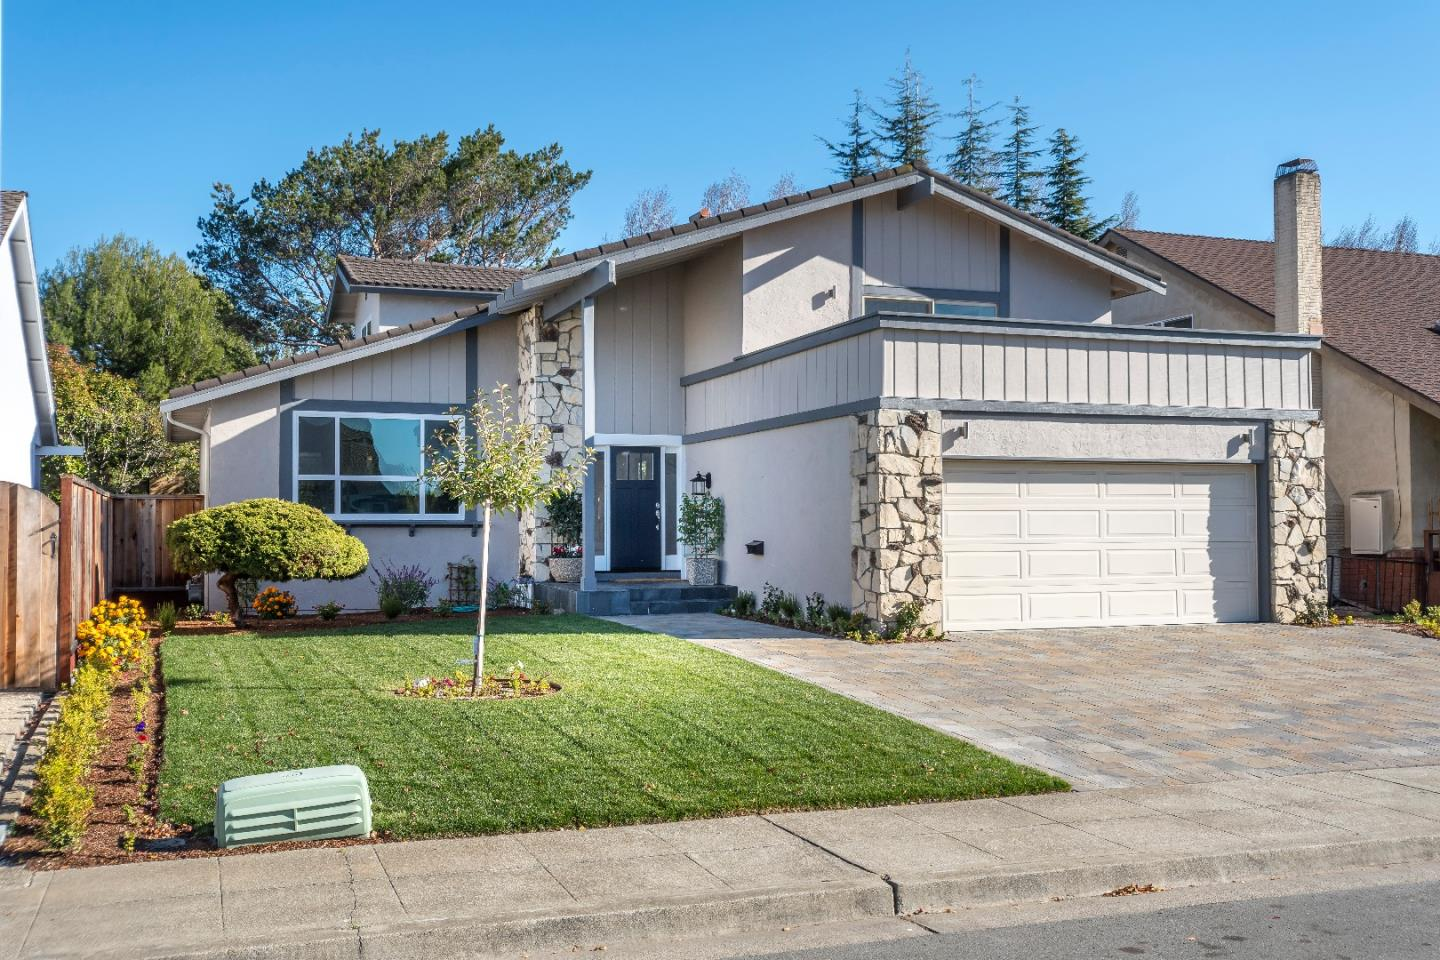 Single Family Home for Sale at 251 Spinnaker Street 251 Spinnaker Street Foster City, California 94404 United States